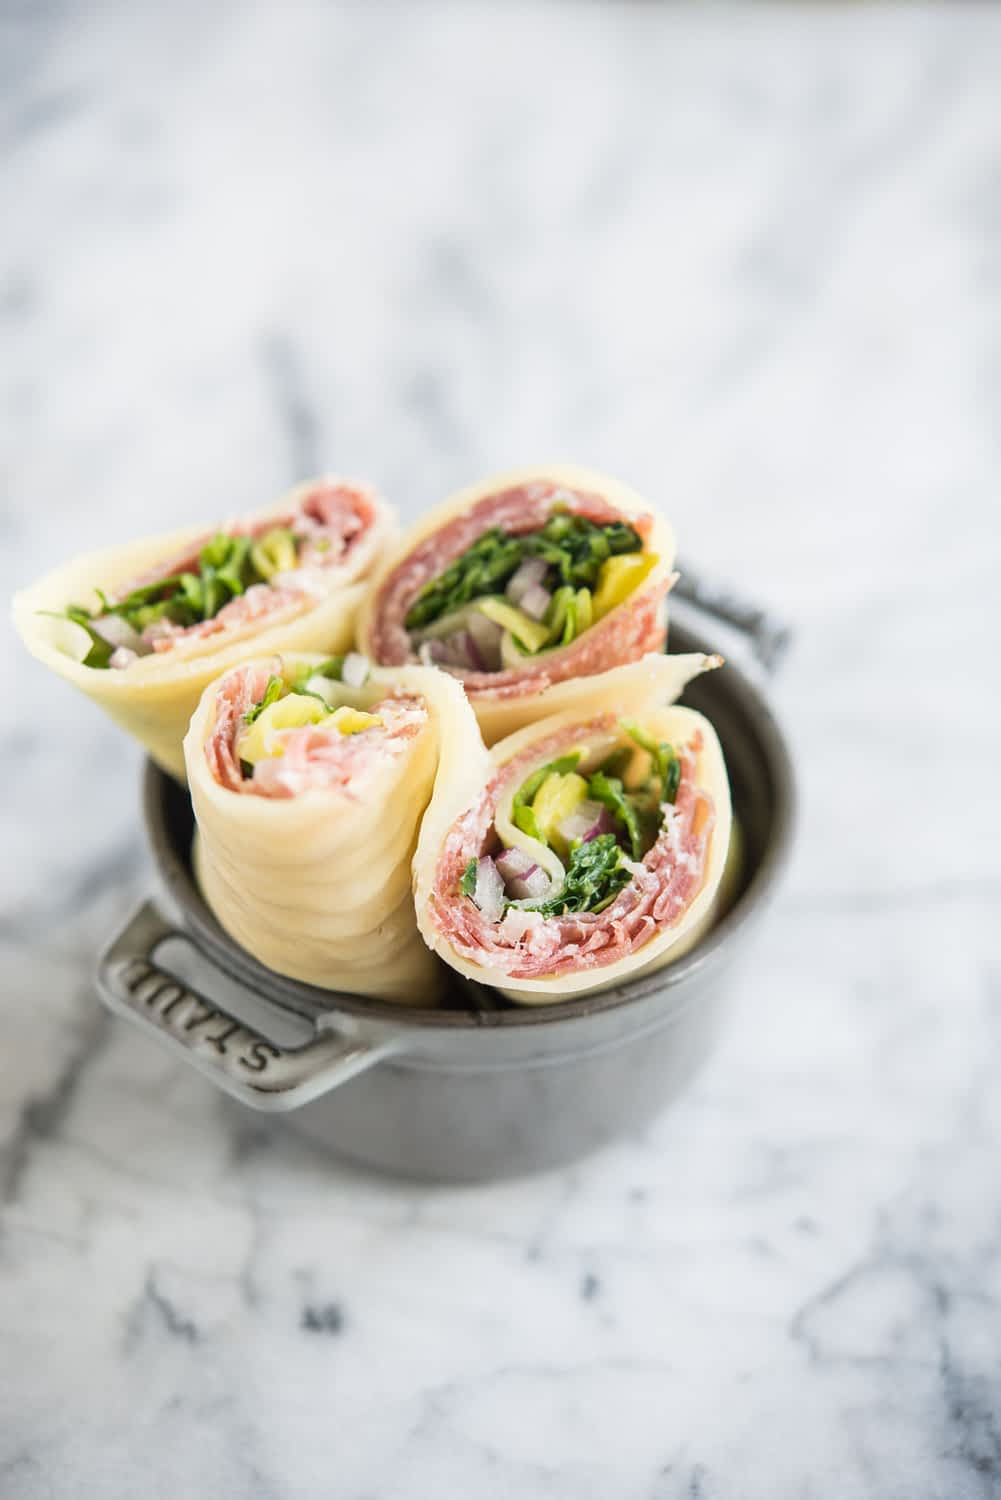 Keto Lunch wraps with Italian meats, arugula, pepperoncini, and red onion, cut in half in a small grey bowl on a marble board